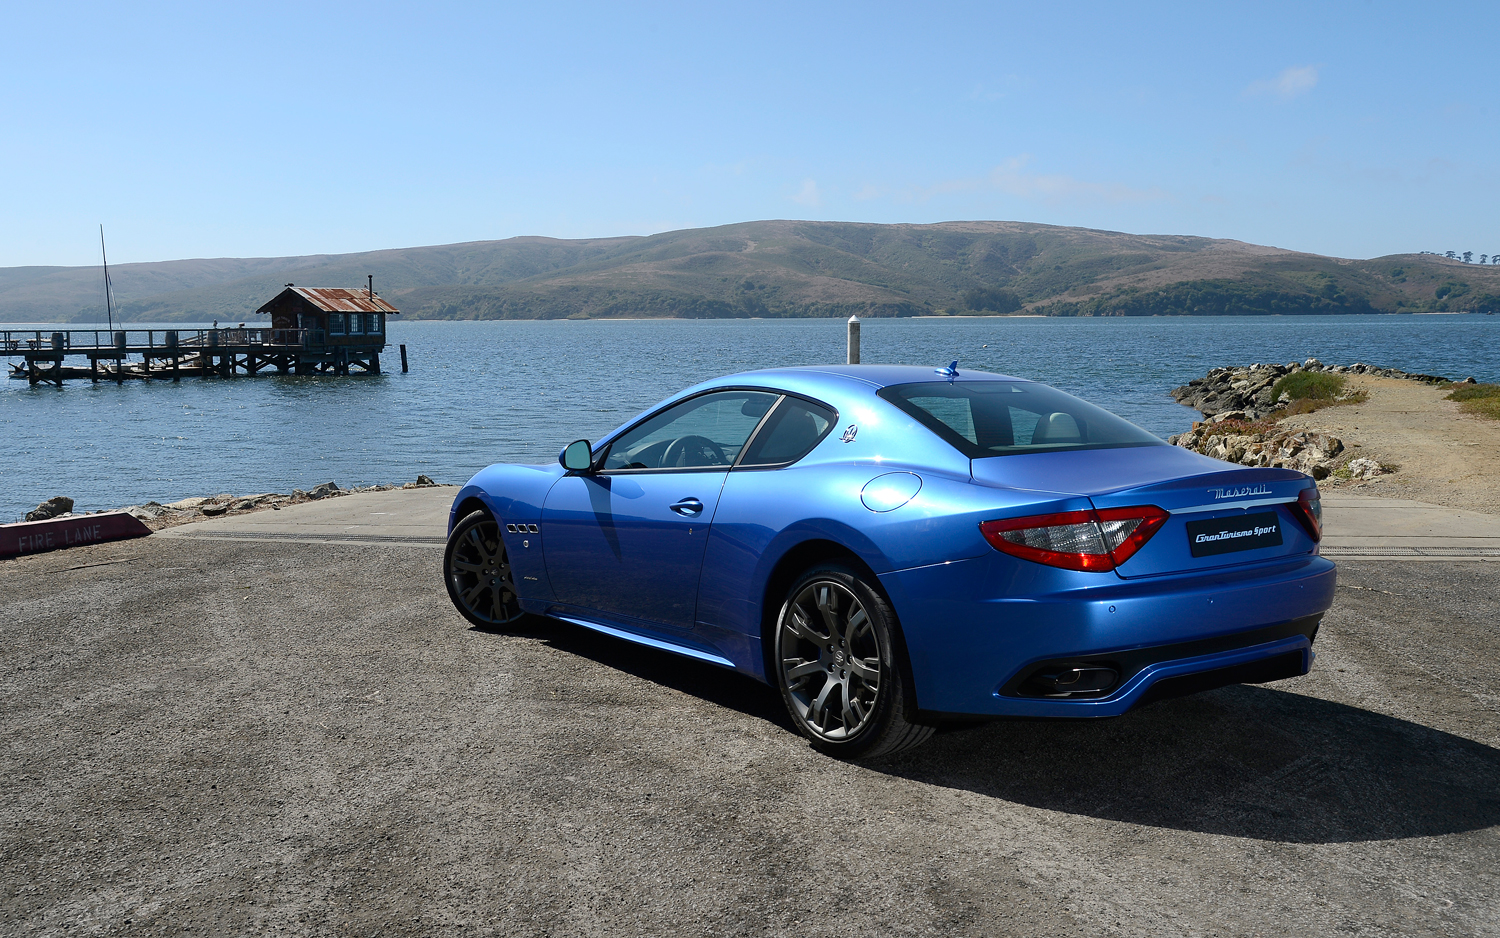 maserati coupe 2013 pictures #6